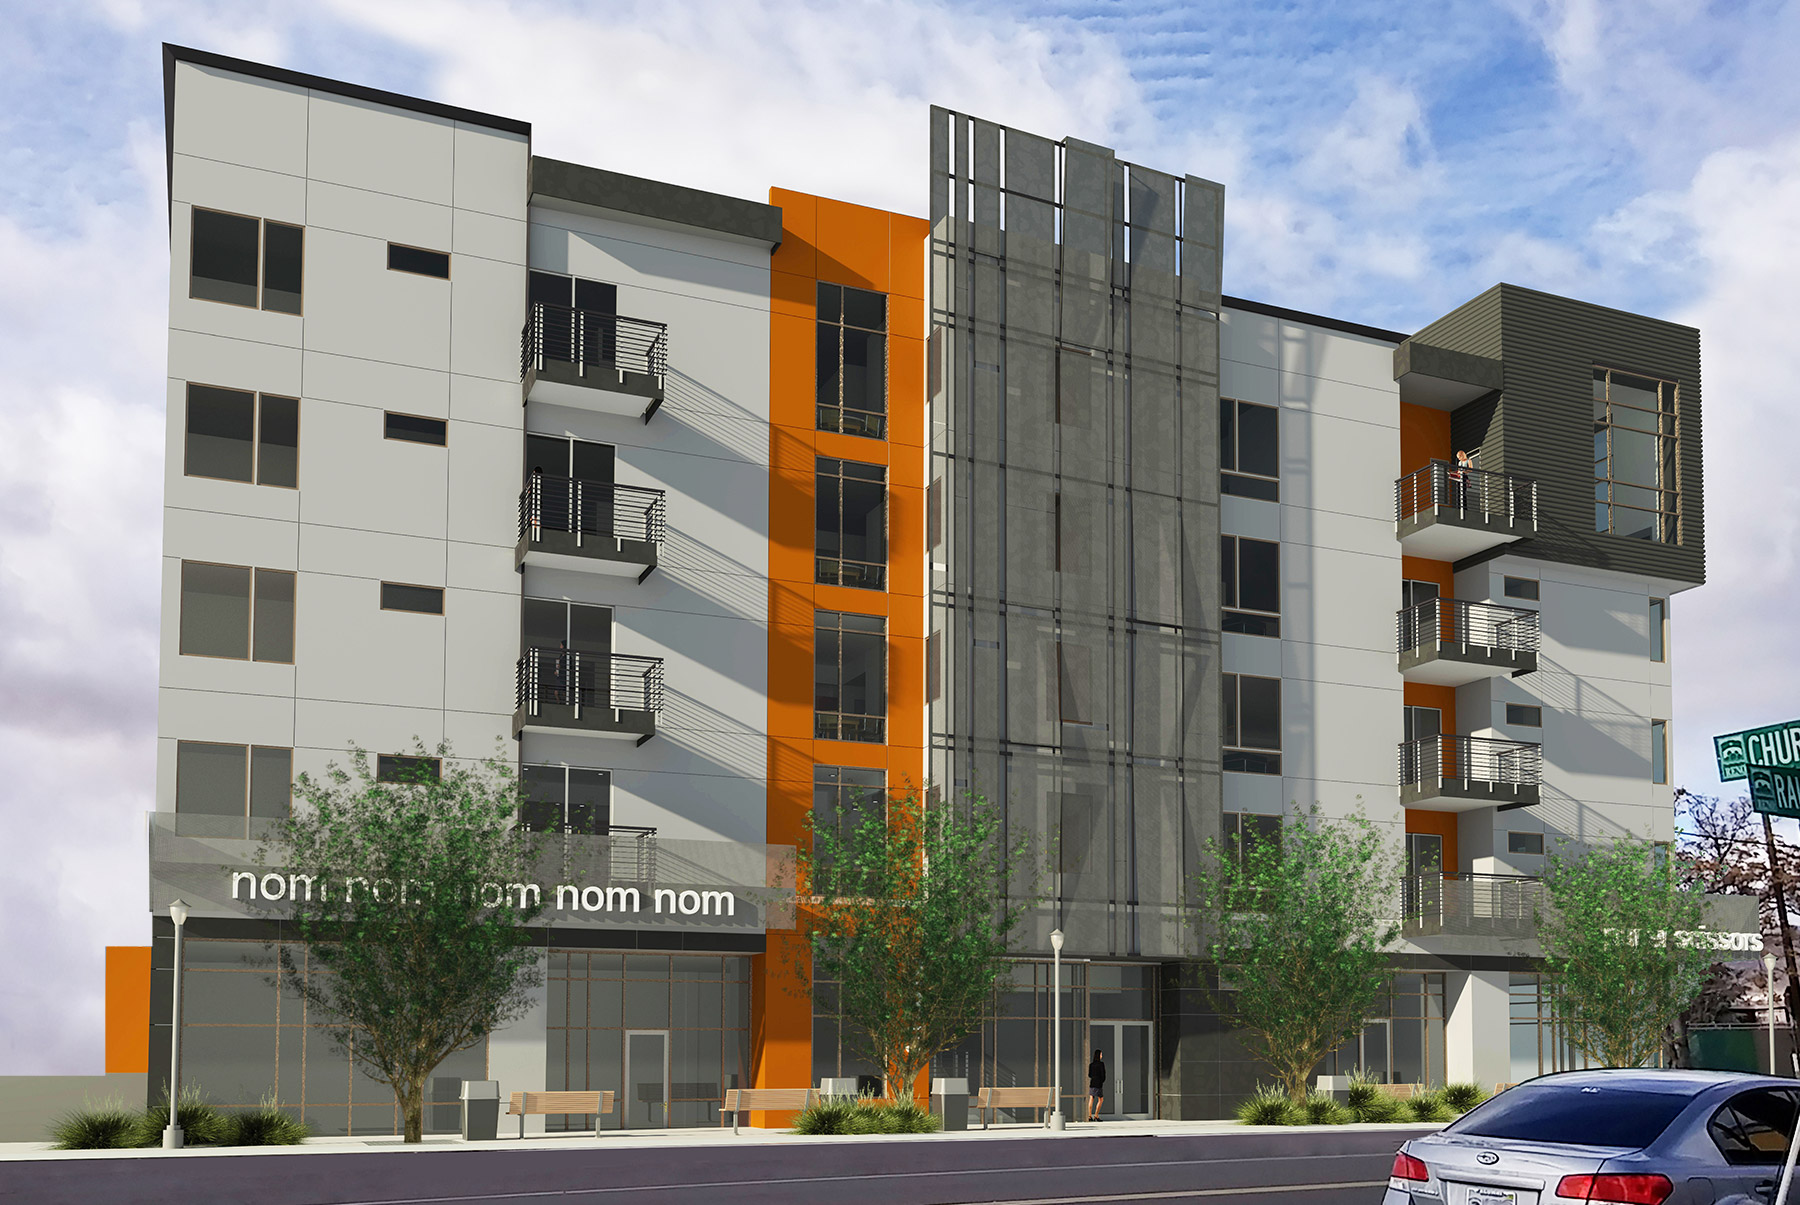 A five-story, mixed-use residential building to be constructed on the west side of Ralston Street. Located between the City of Reno ReTRAC train trench to the north and West Second Street to the south.